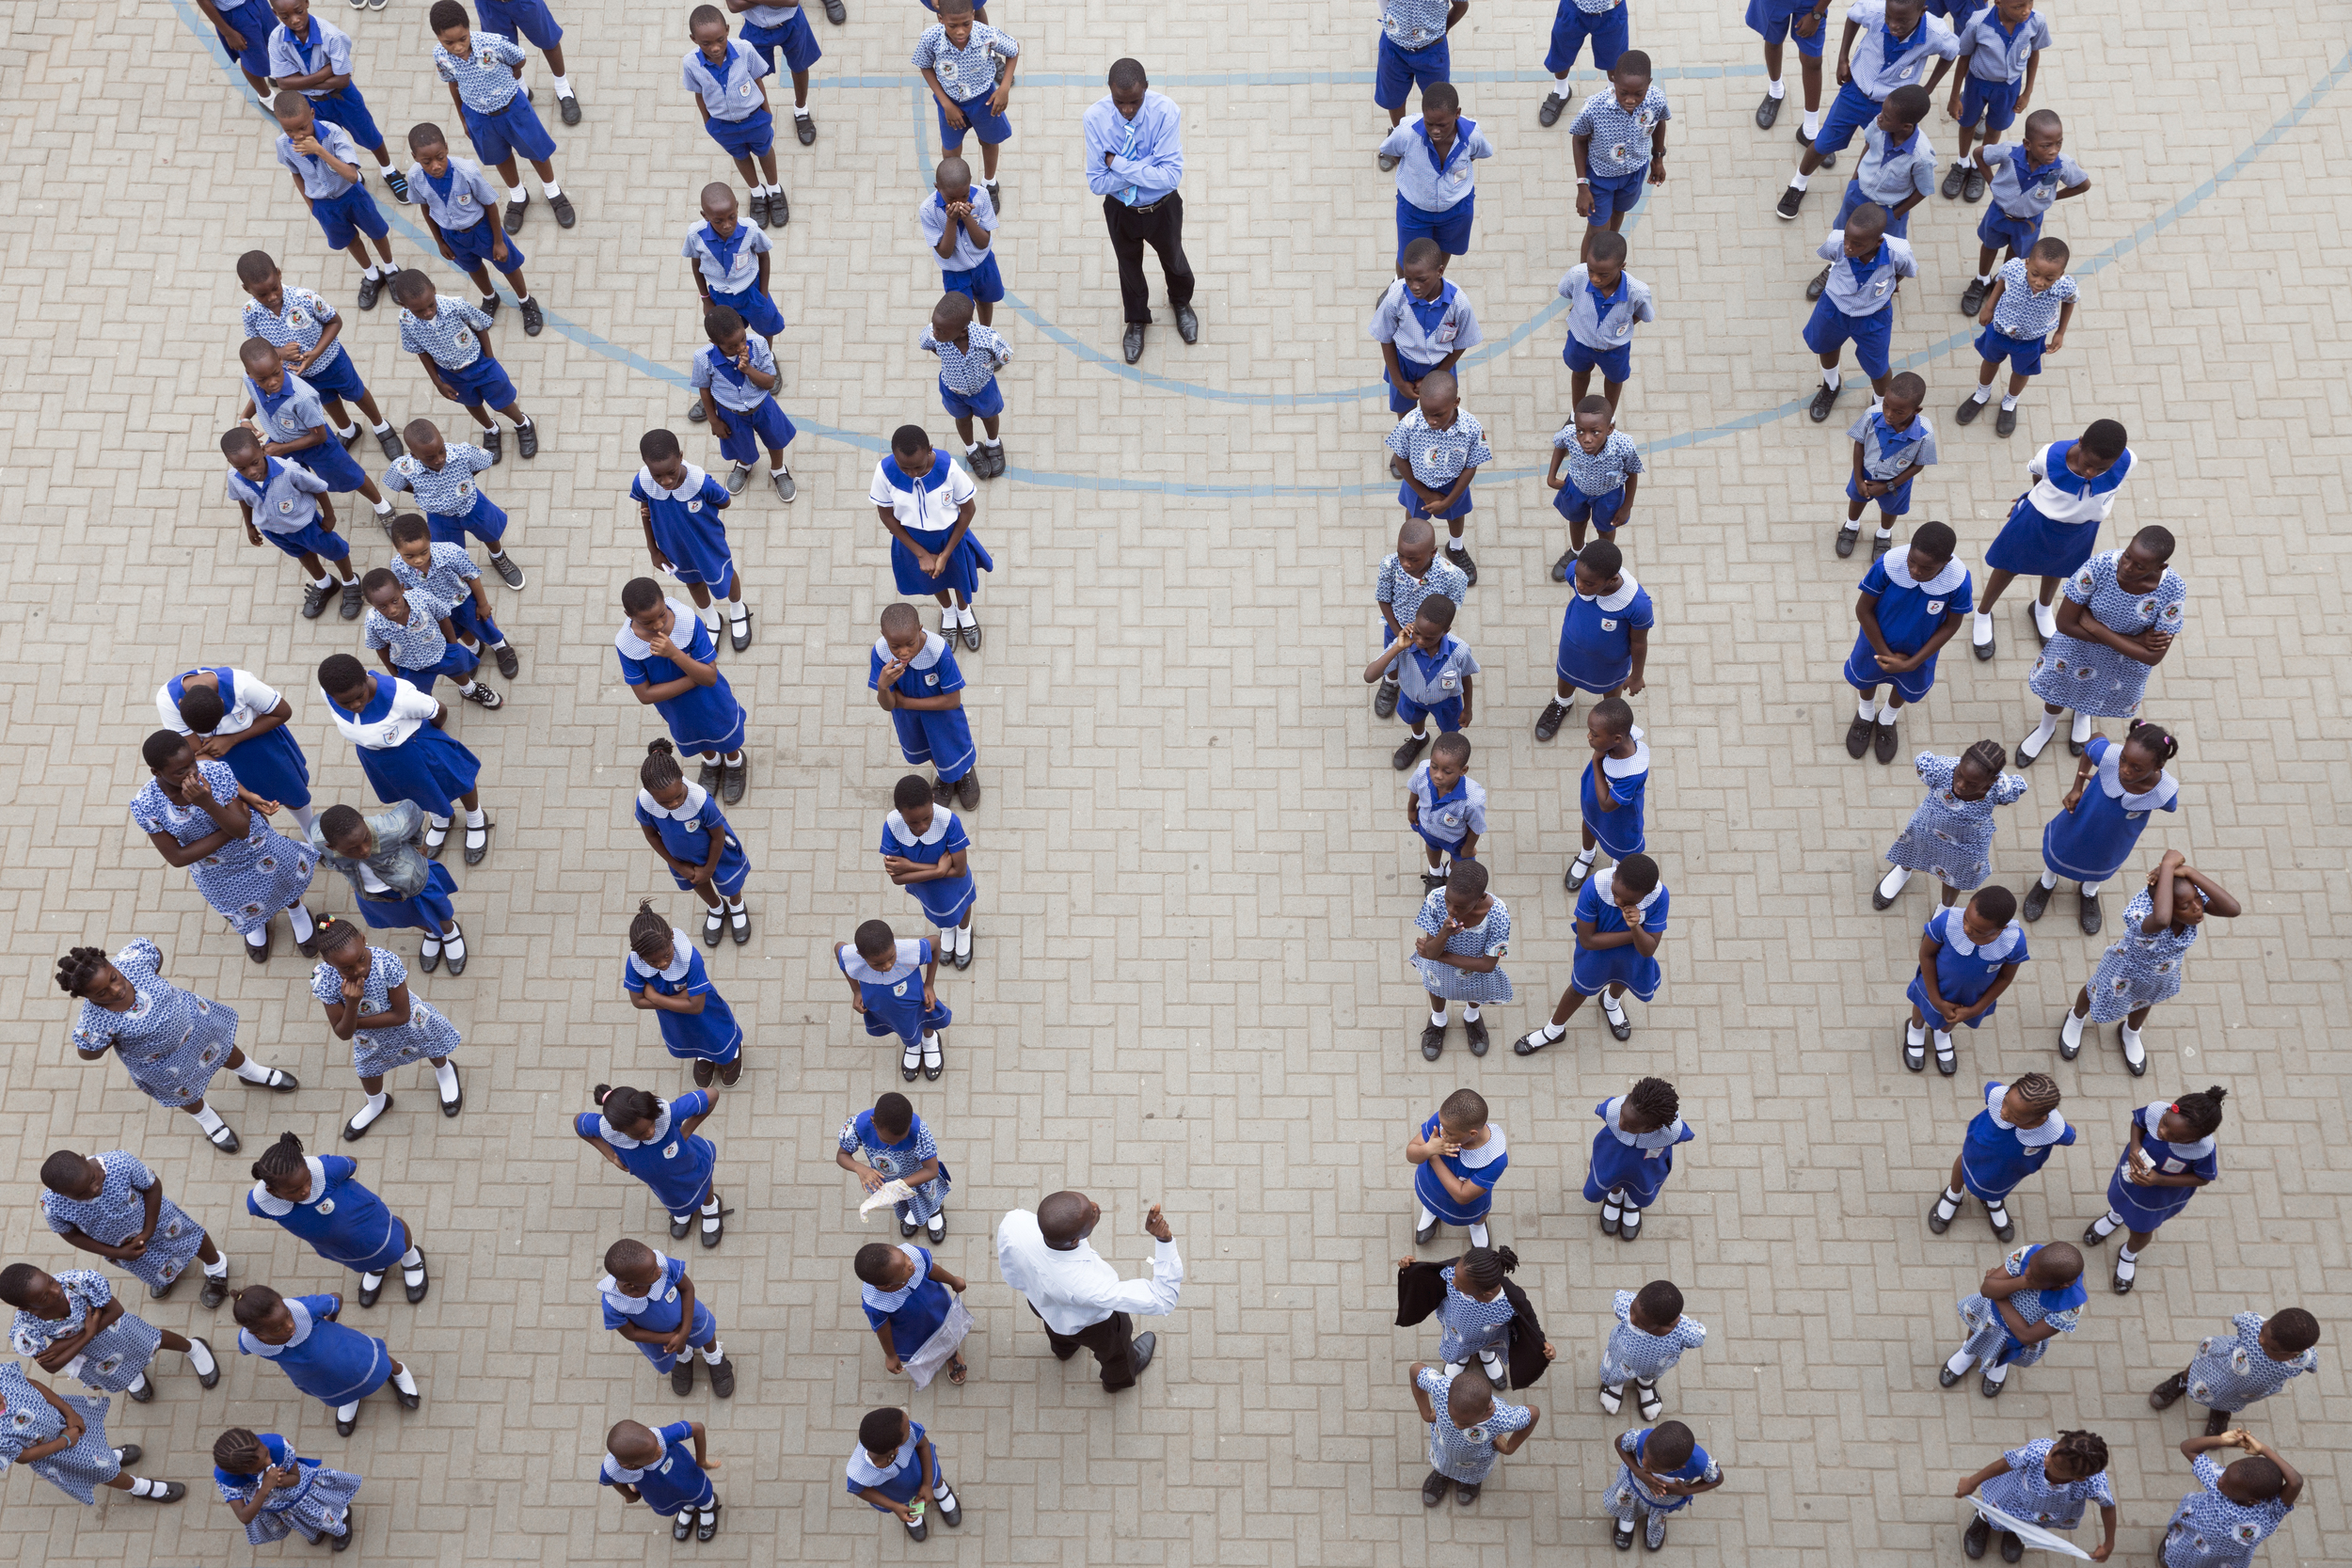 Brainbirds students (not all included) line up in their uniforms for their morning assembly.